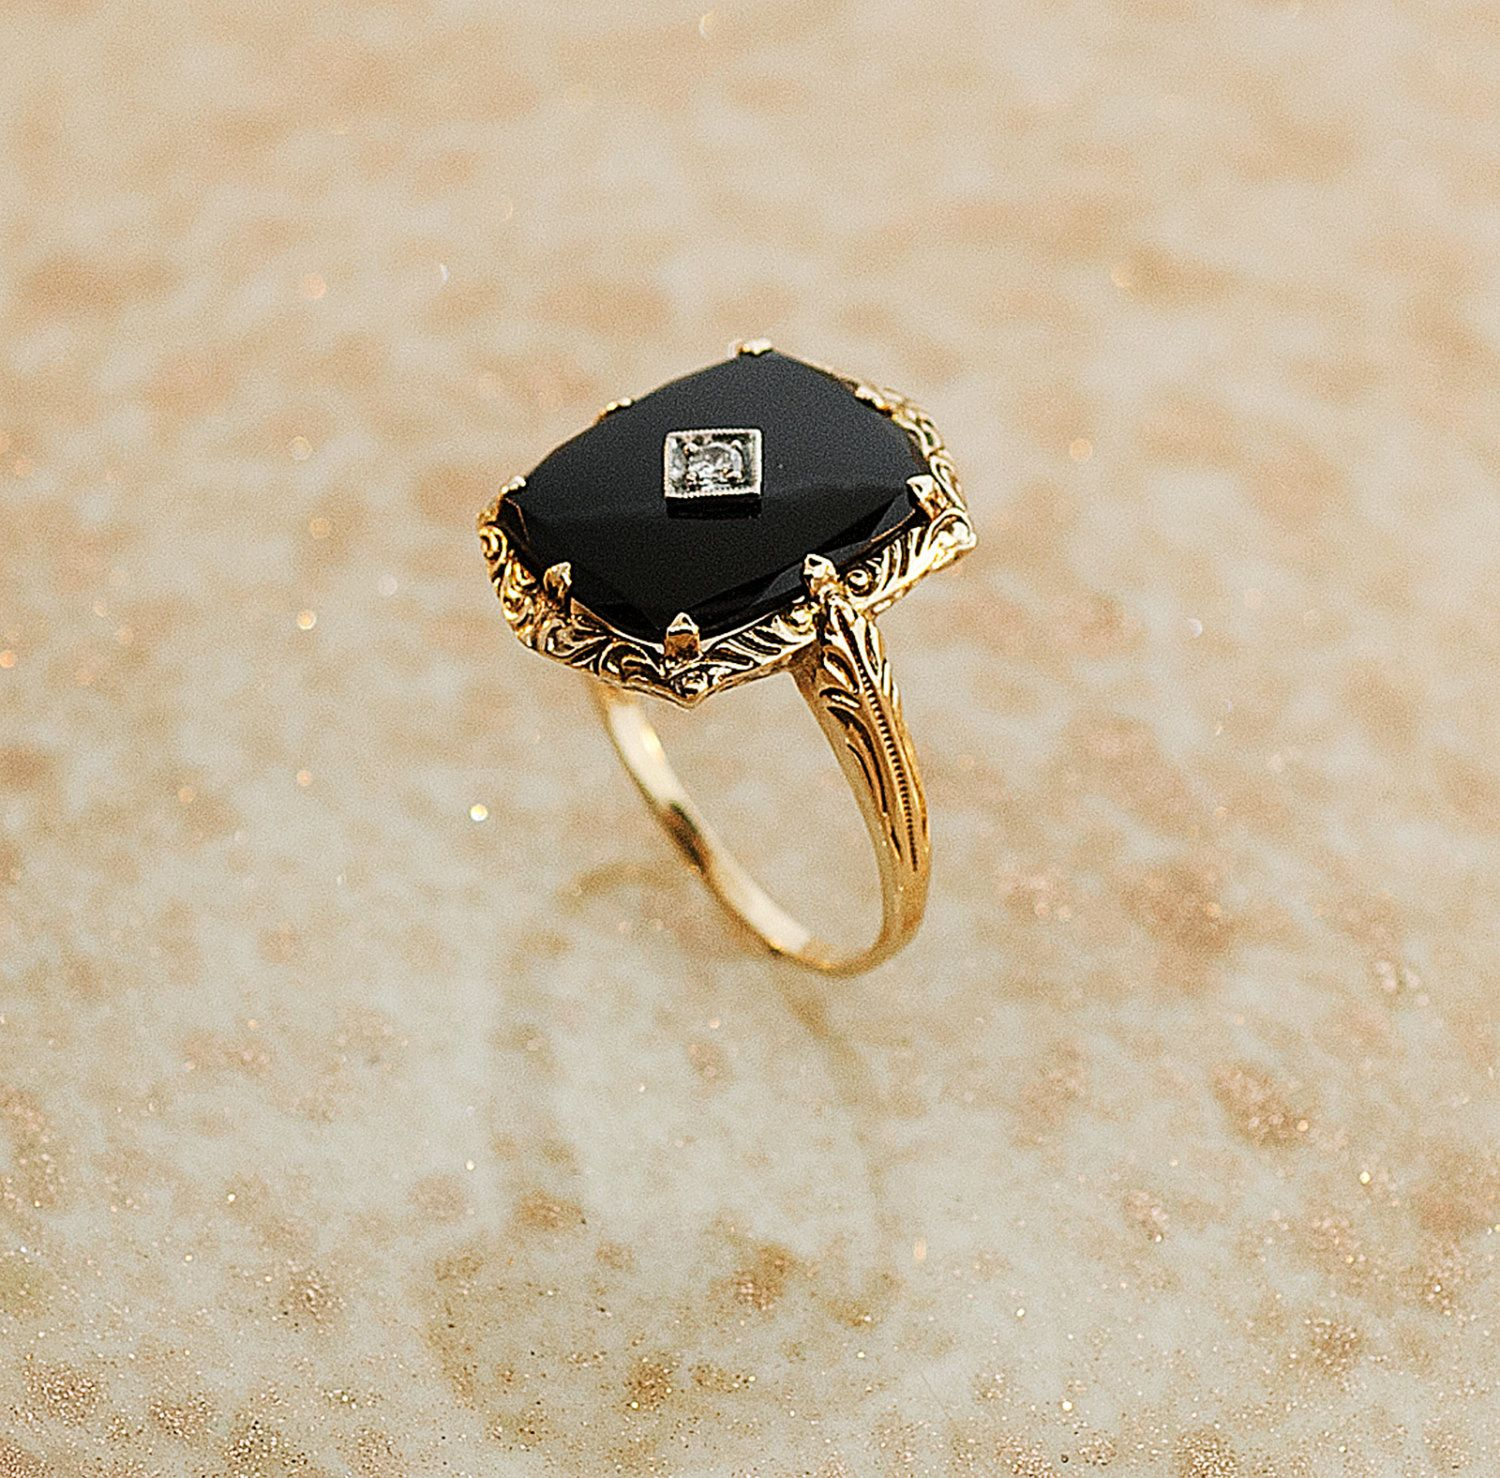 Antique 14k Yellow Gold Black yx and Diamond Ring $795 00 via